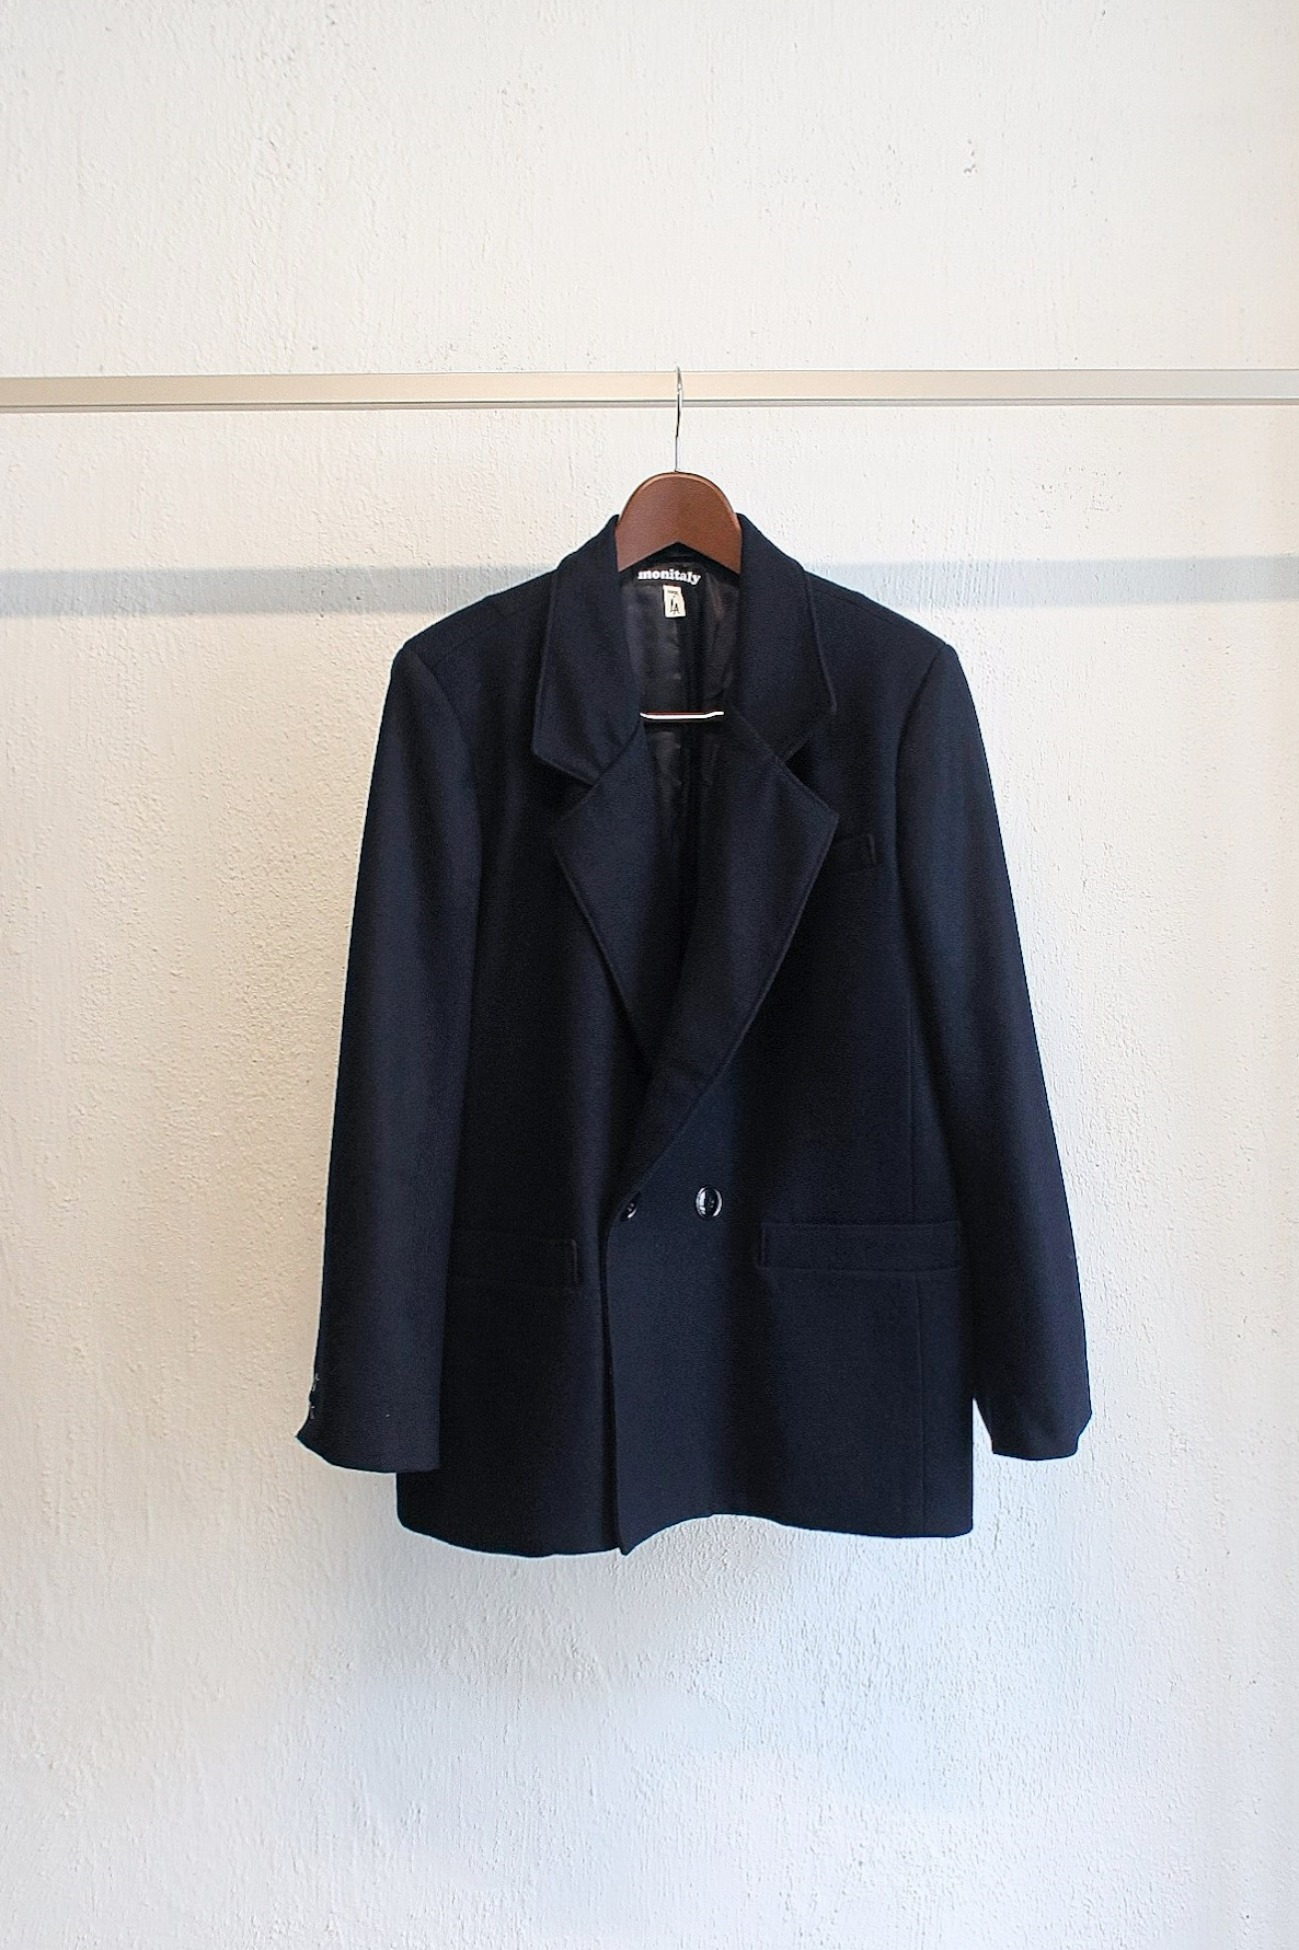 [Monitaly] Mickey Jacket - Wool Flannel Solid Navy